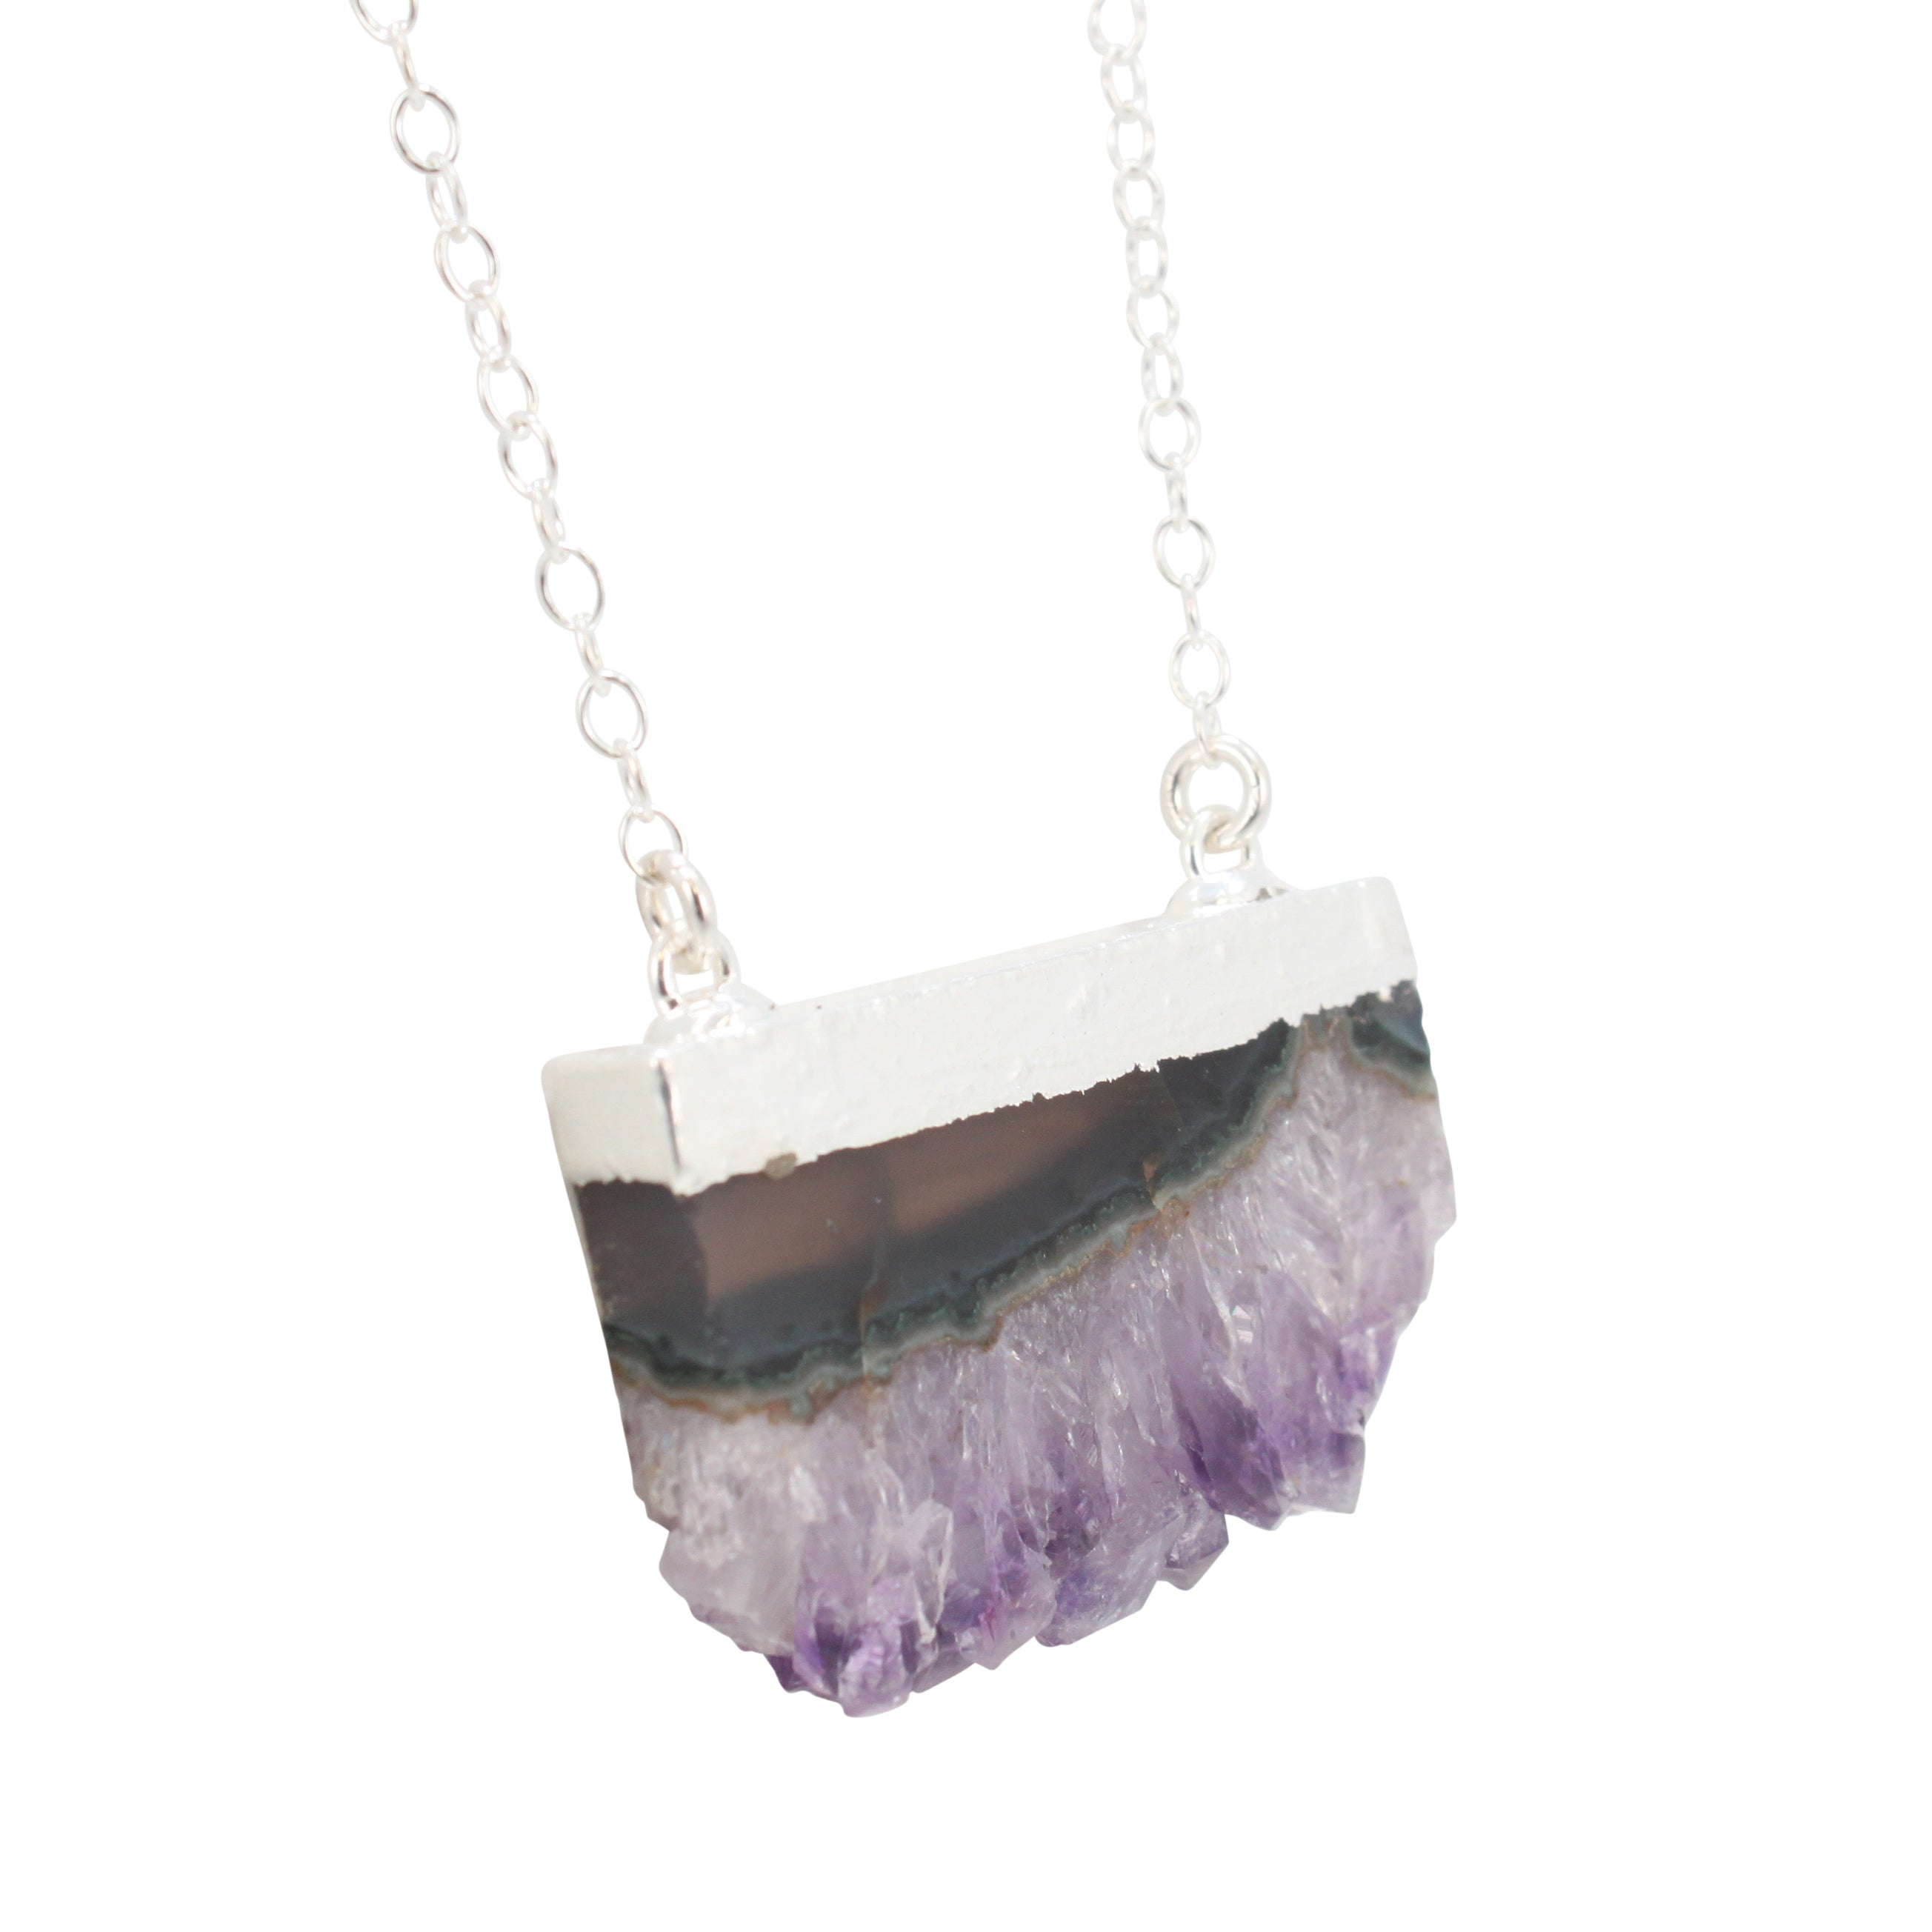 amethyst necklace collections costume ishka raw jewellery pendant necklaces products